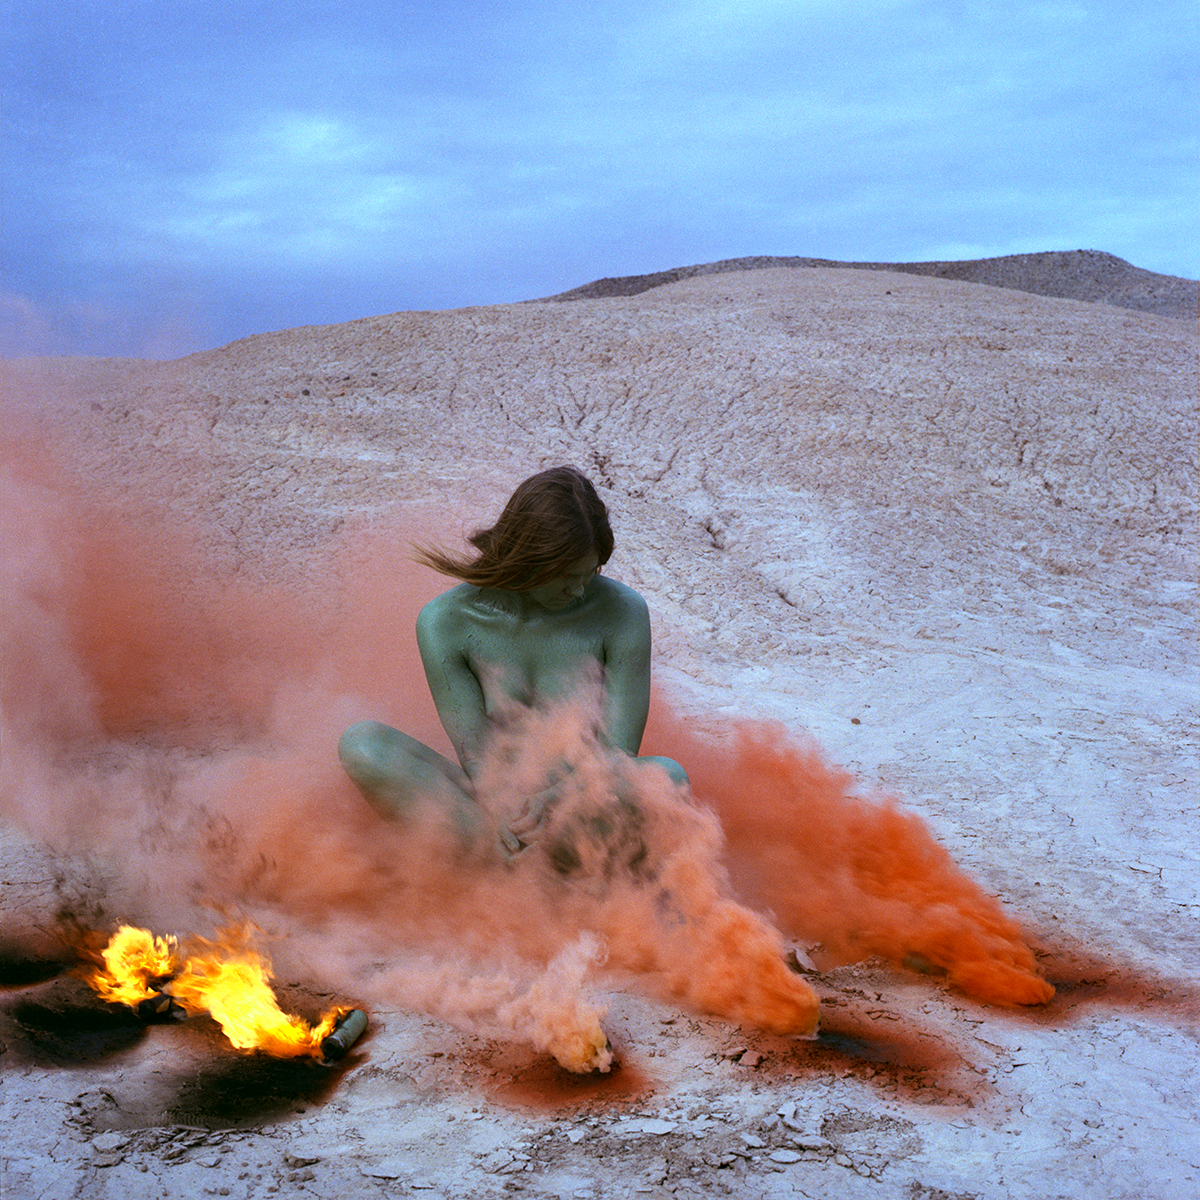 4. Immolation, 1972; from Women and Smoke, Image courtesy of the artist and Nina Johnson